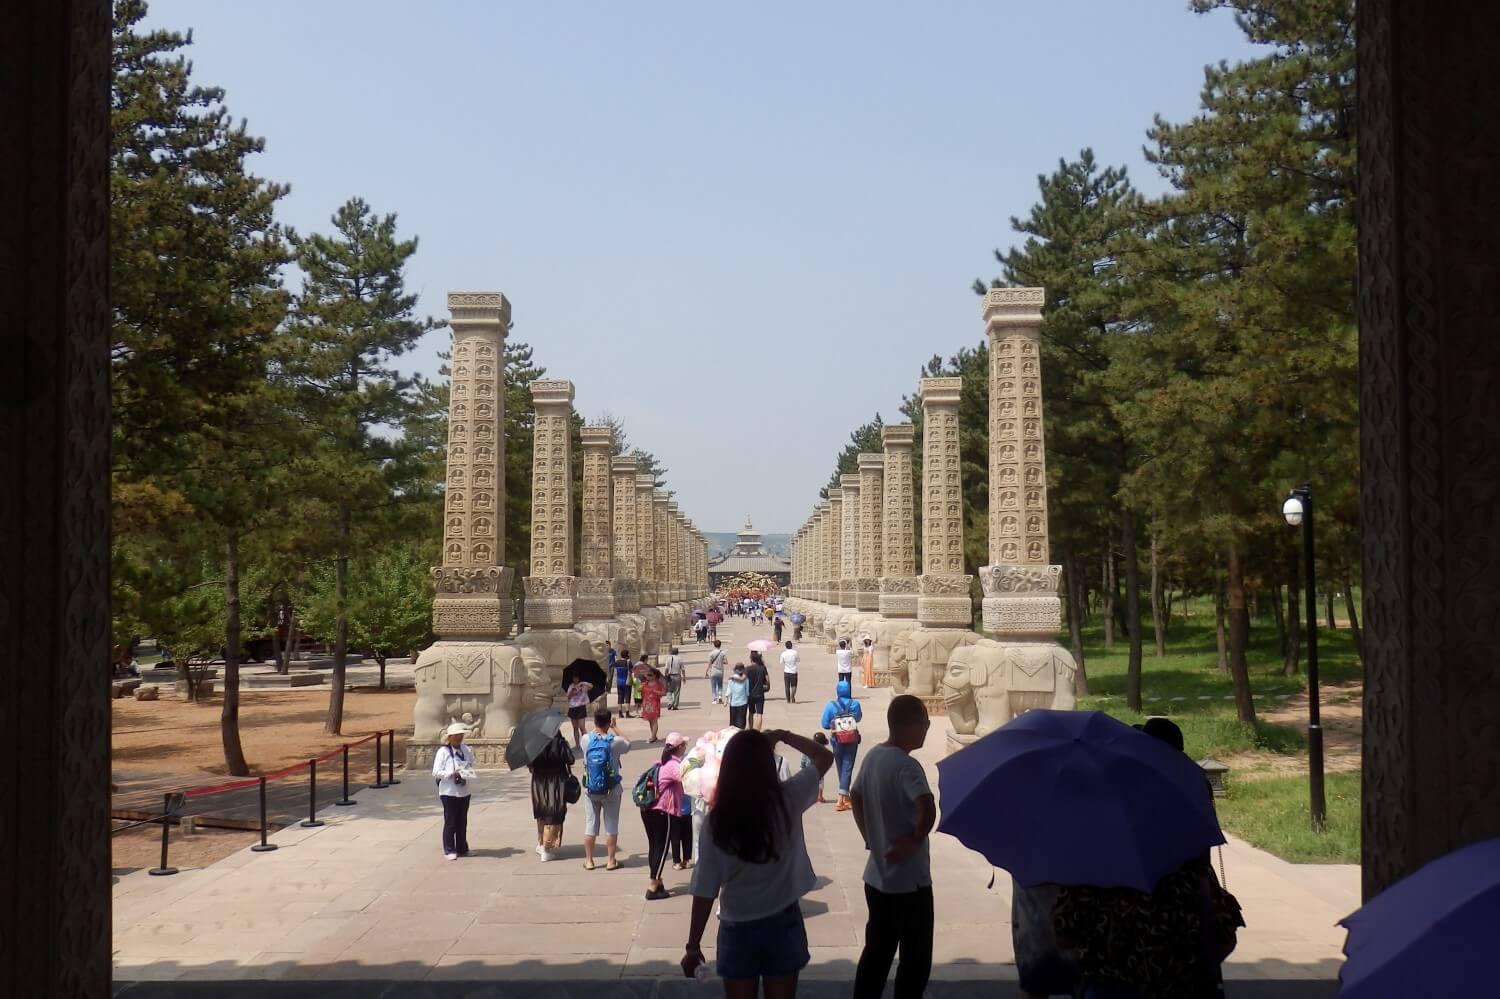 The entrance to the temple in Yungang Park, China